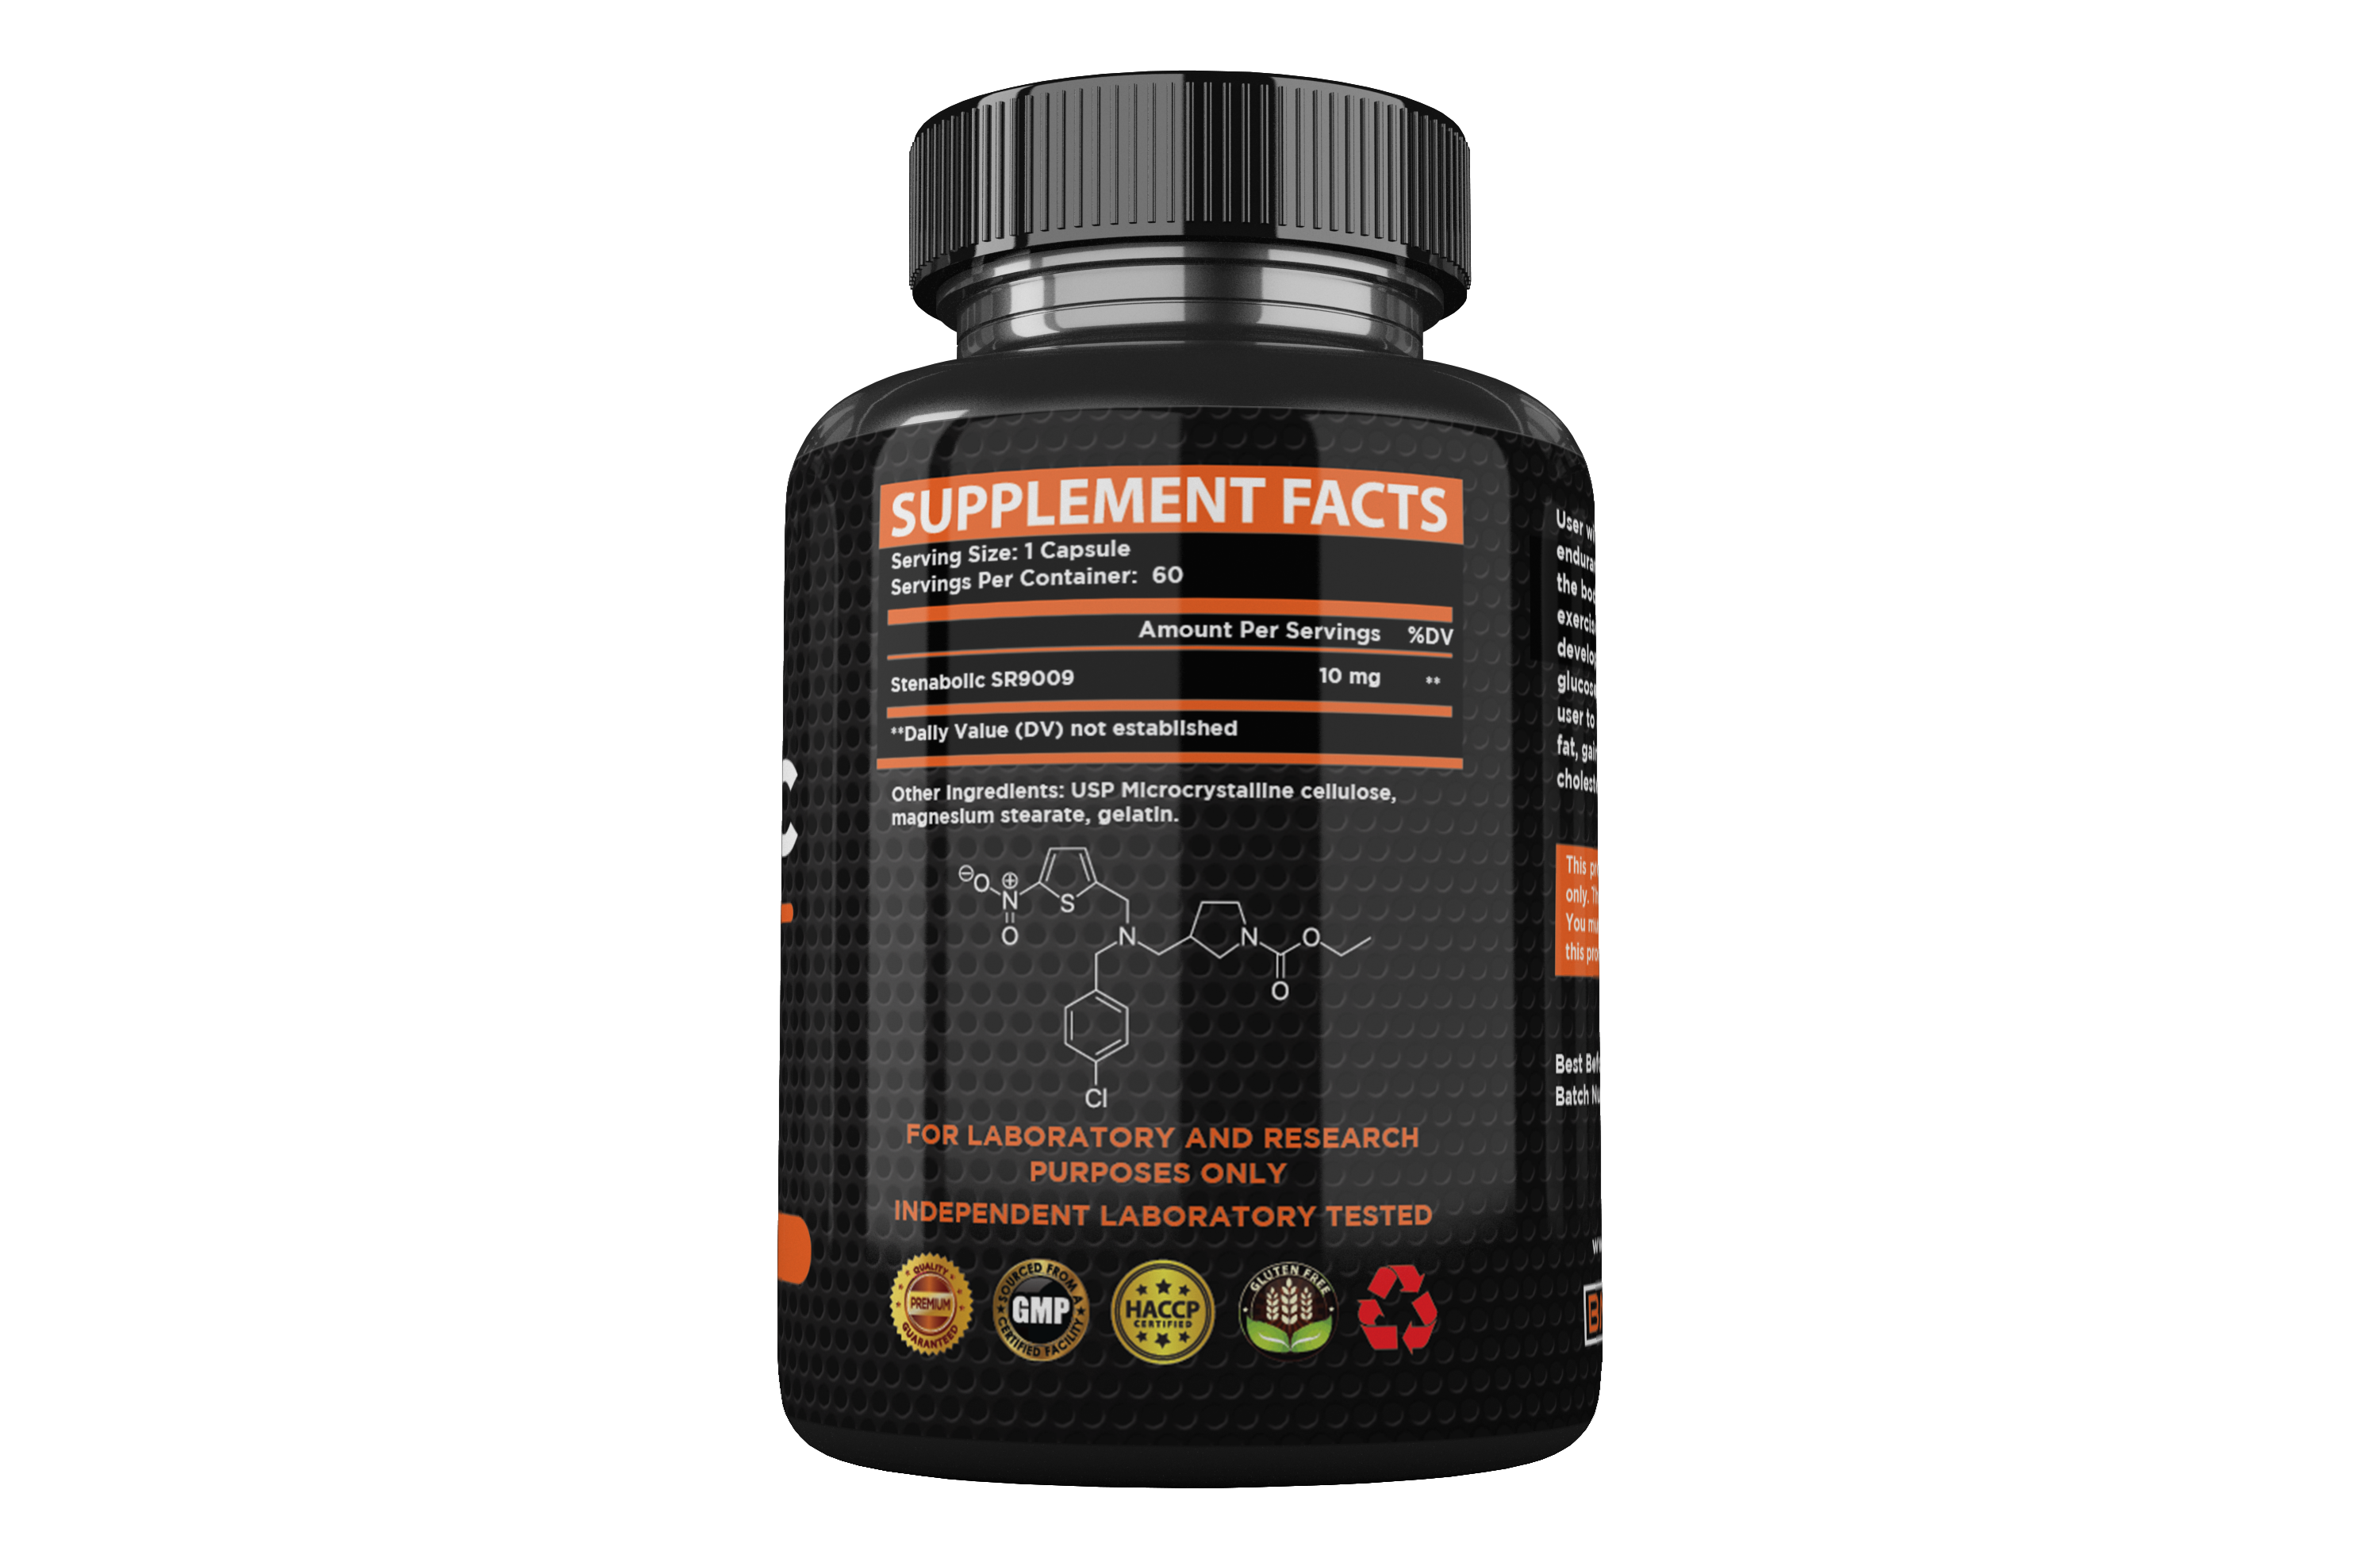 Steabolic SR9009 sarm capsules - Boost stamina endurance reduce bodyfat and weight